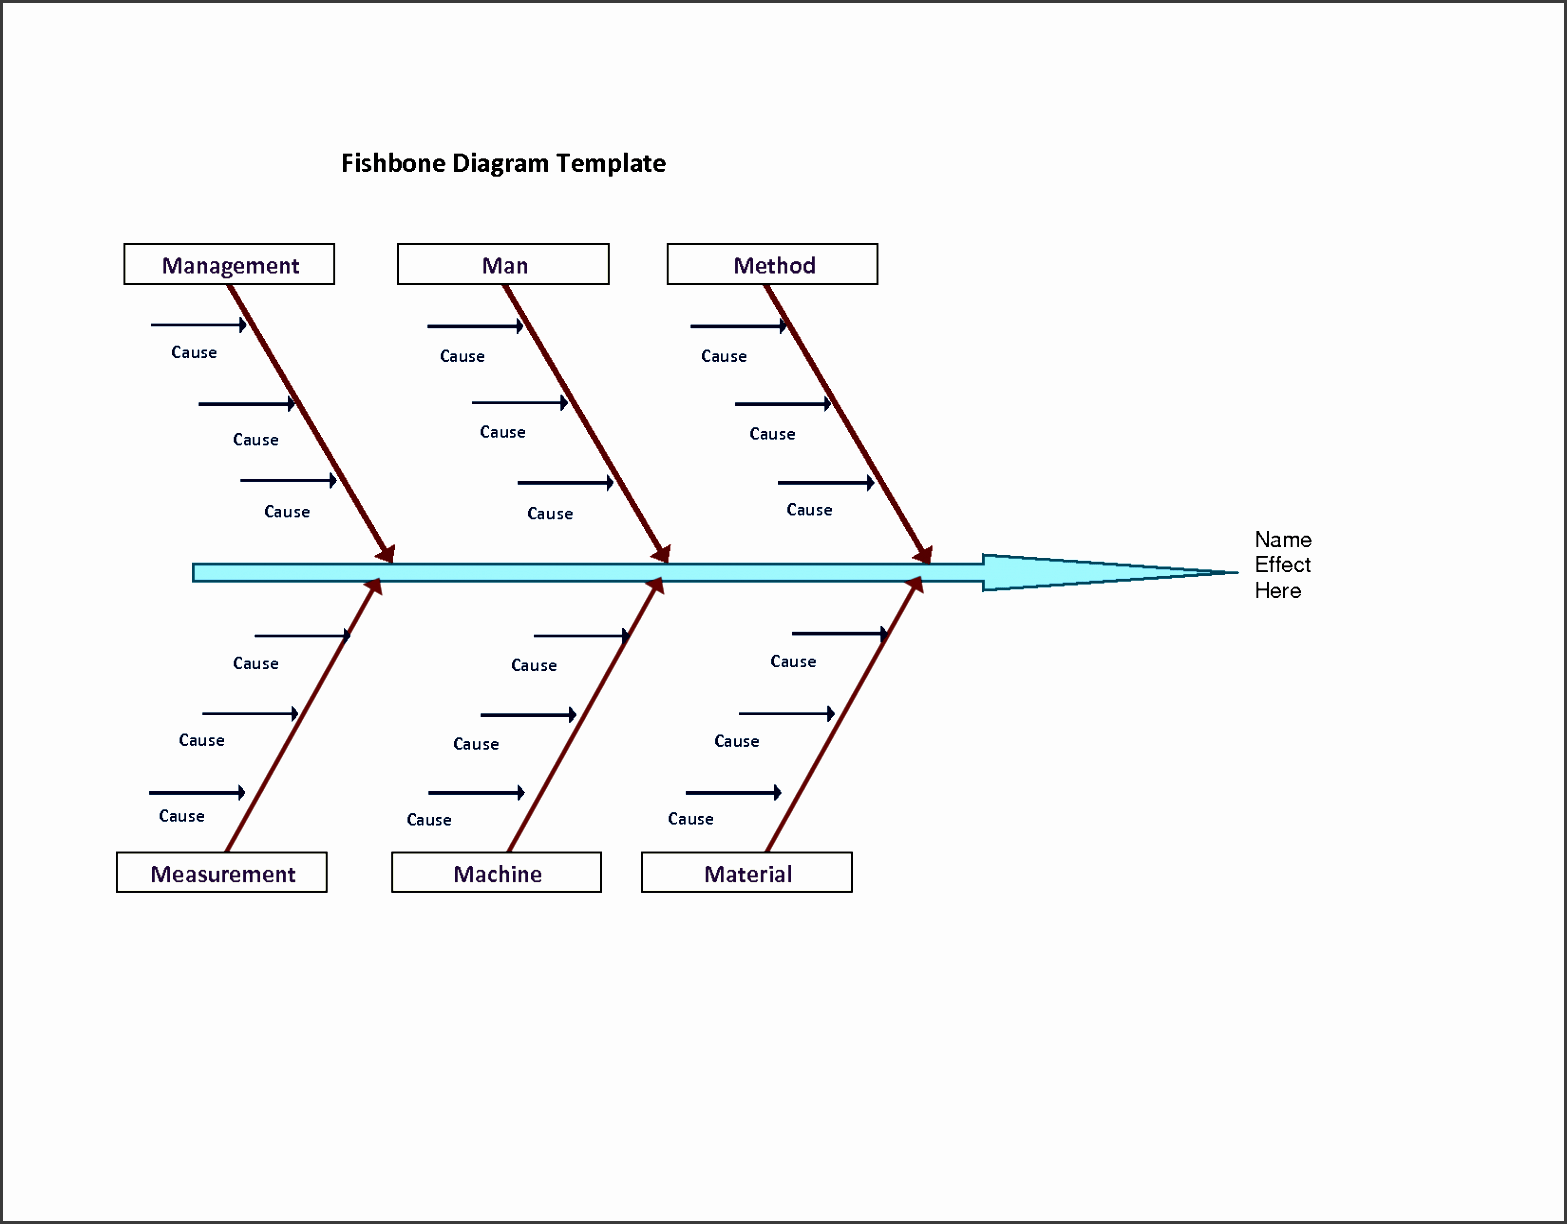 6 How To Make Fishbone Diagram For Free